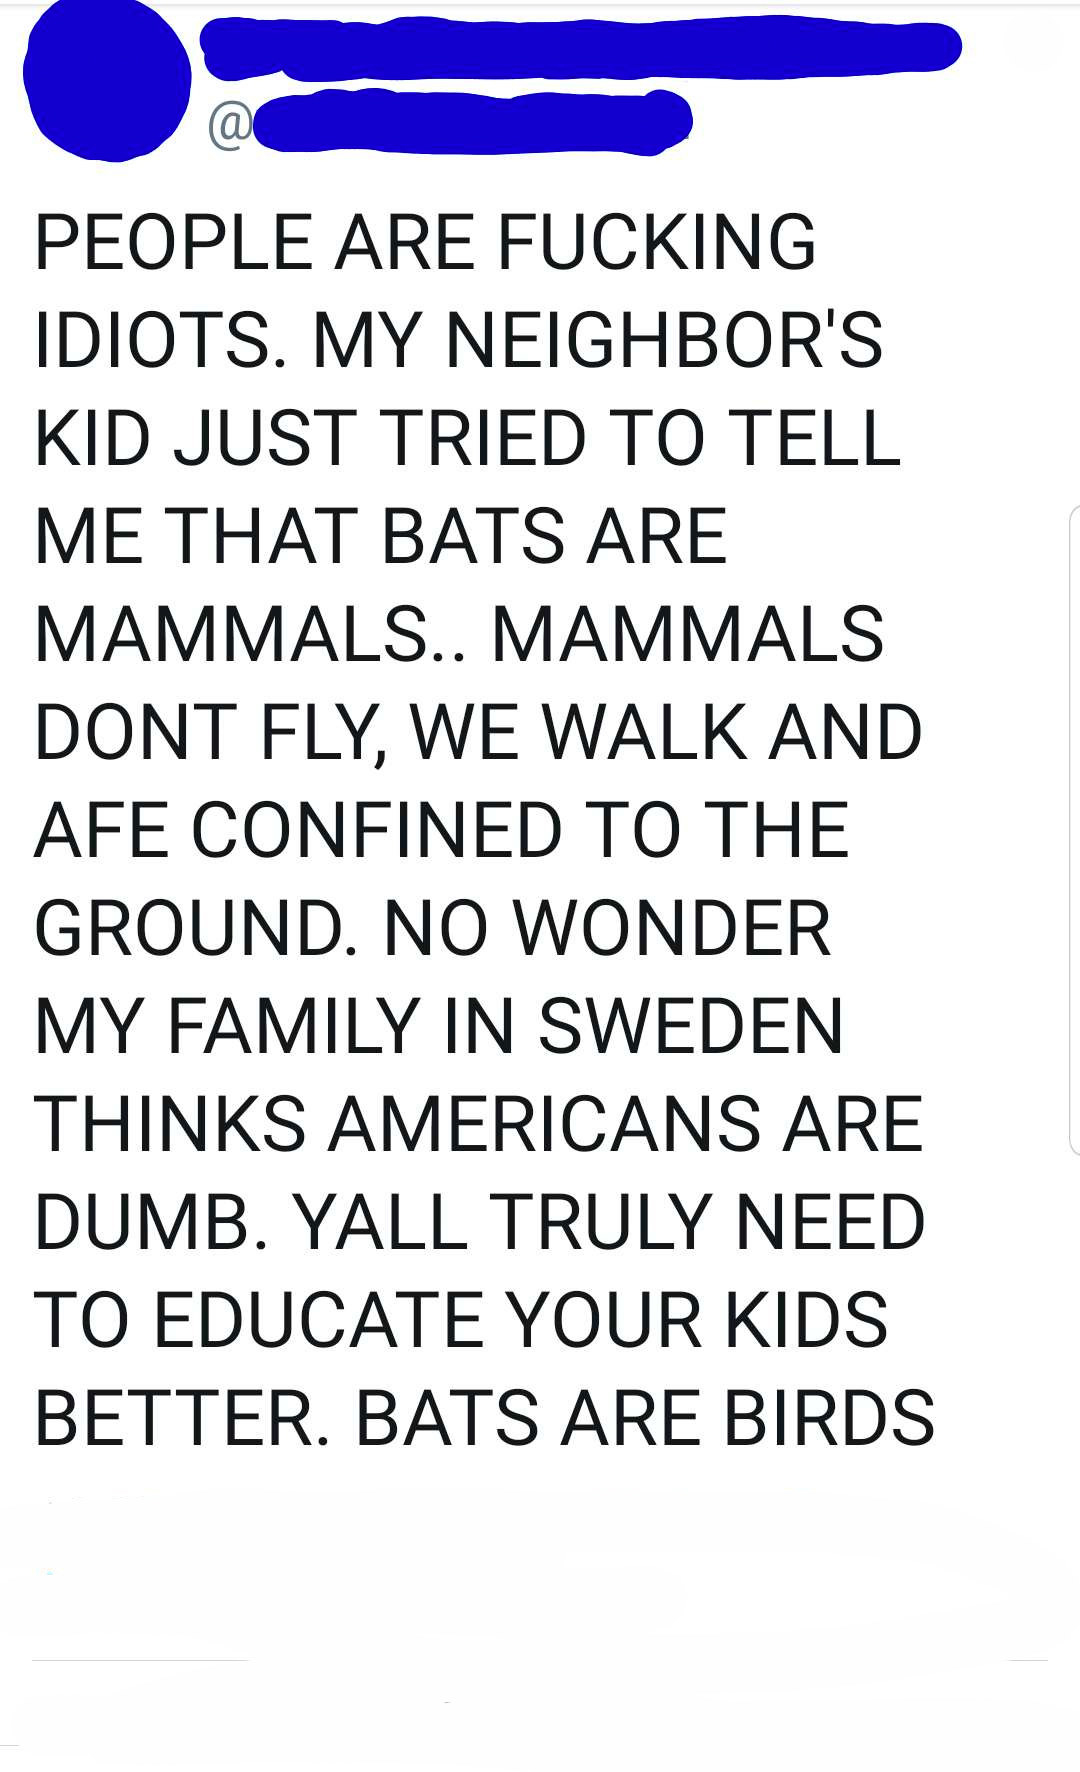 tweet of someone freaking out about how bats are birds